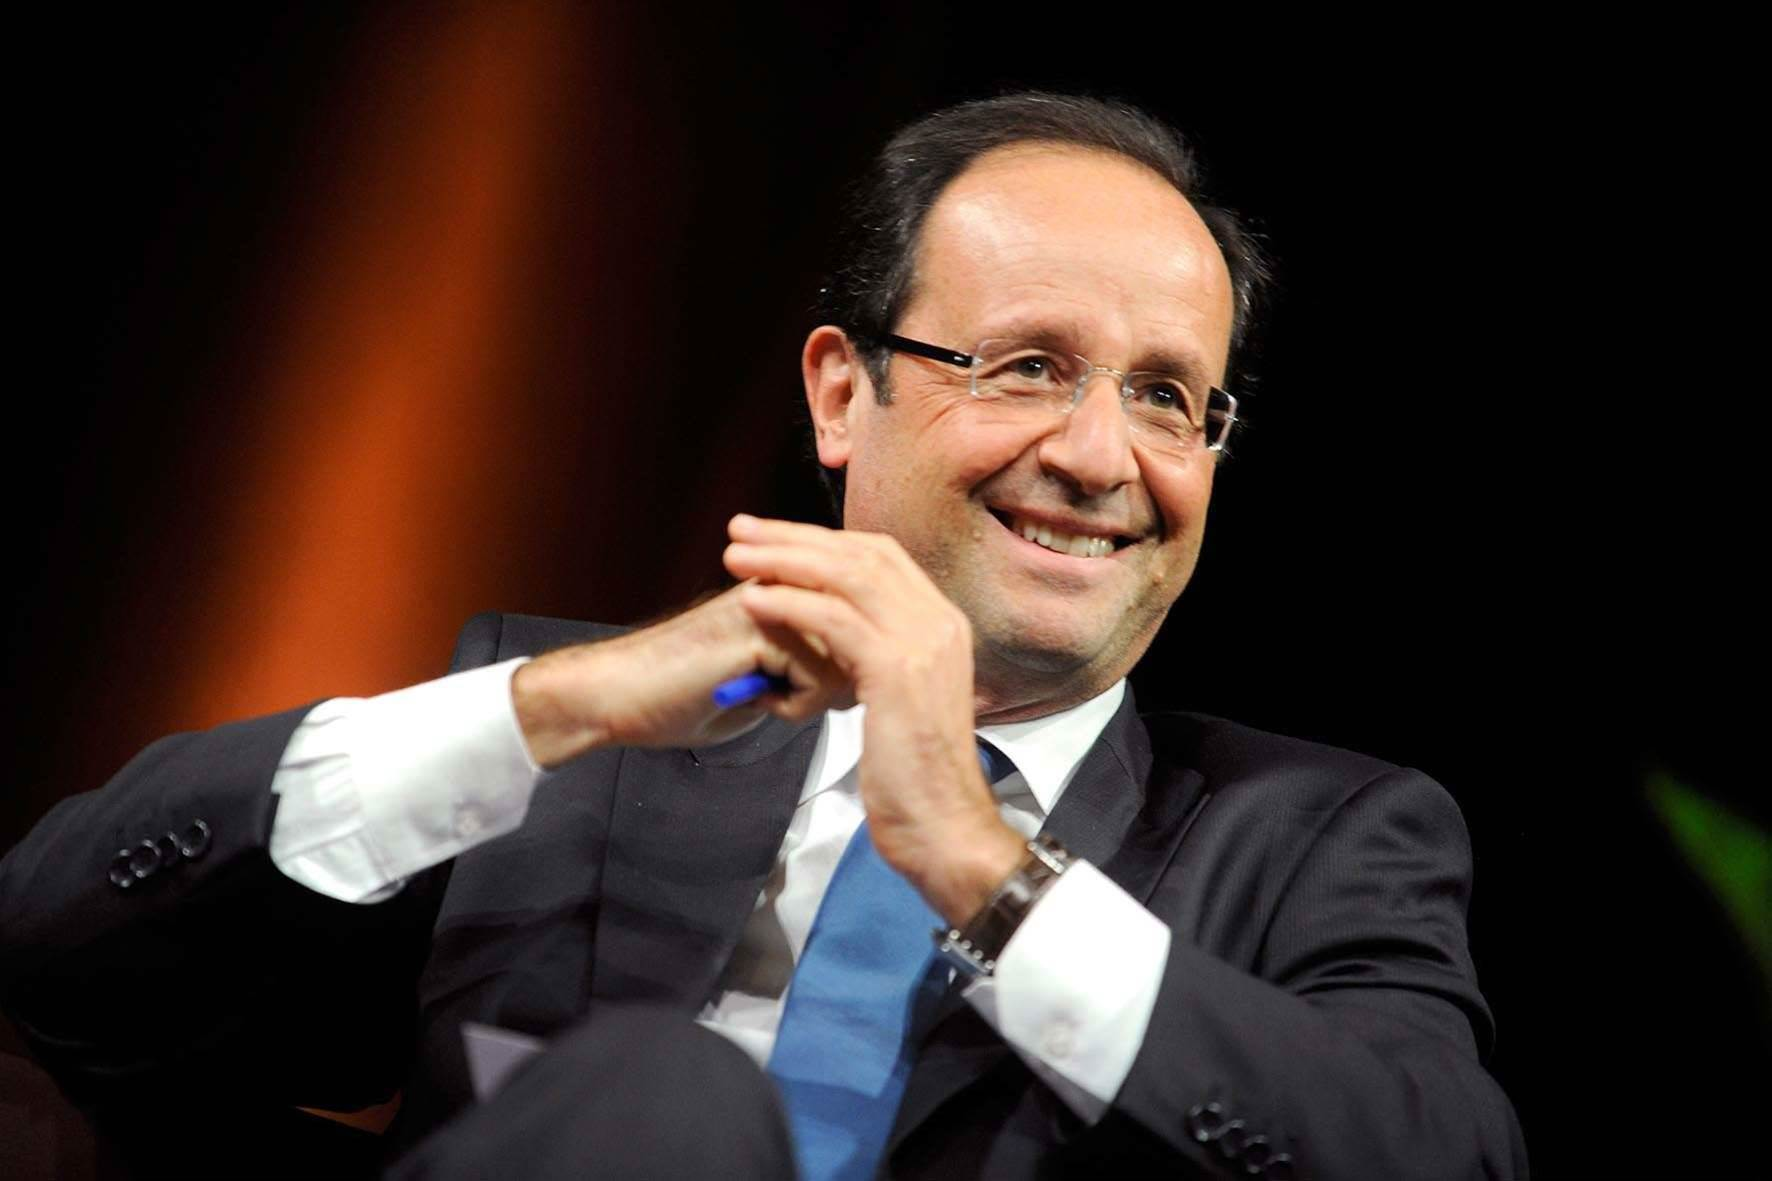 France looks at taxing user generated content